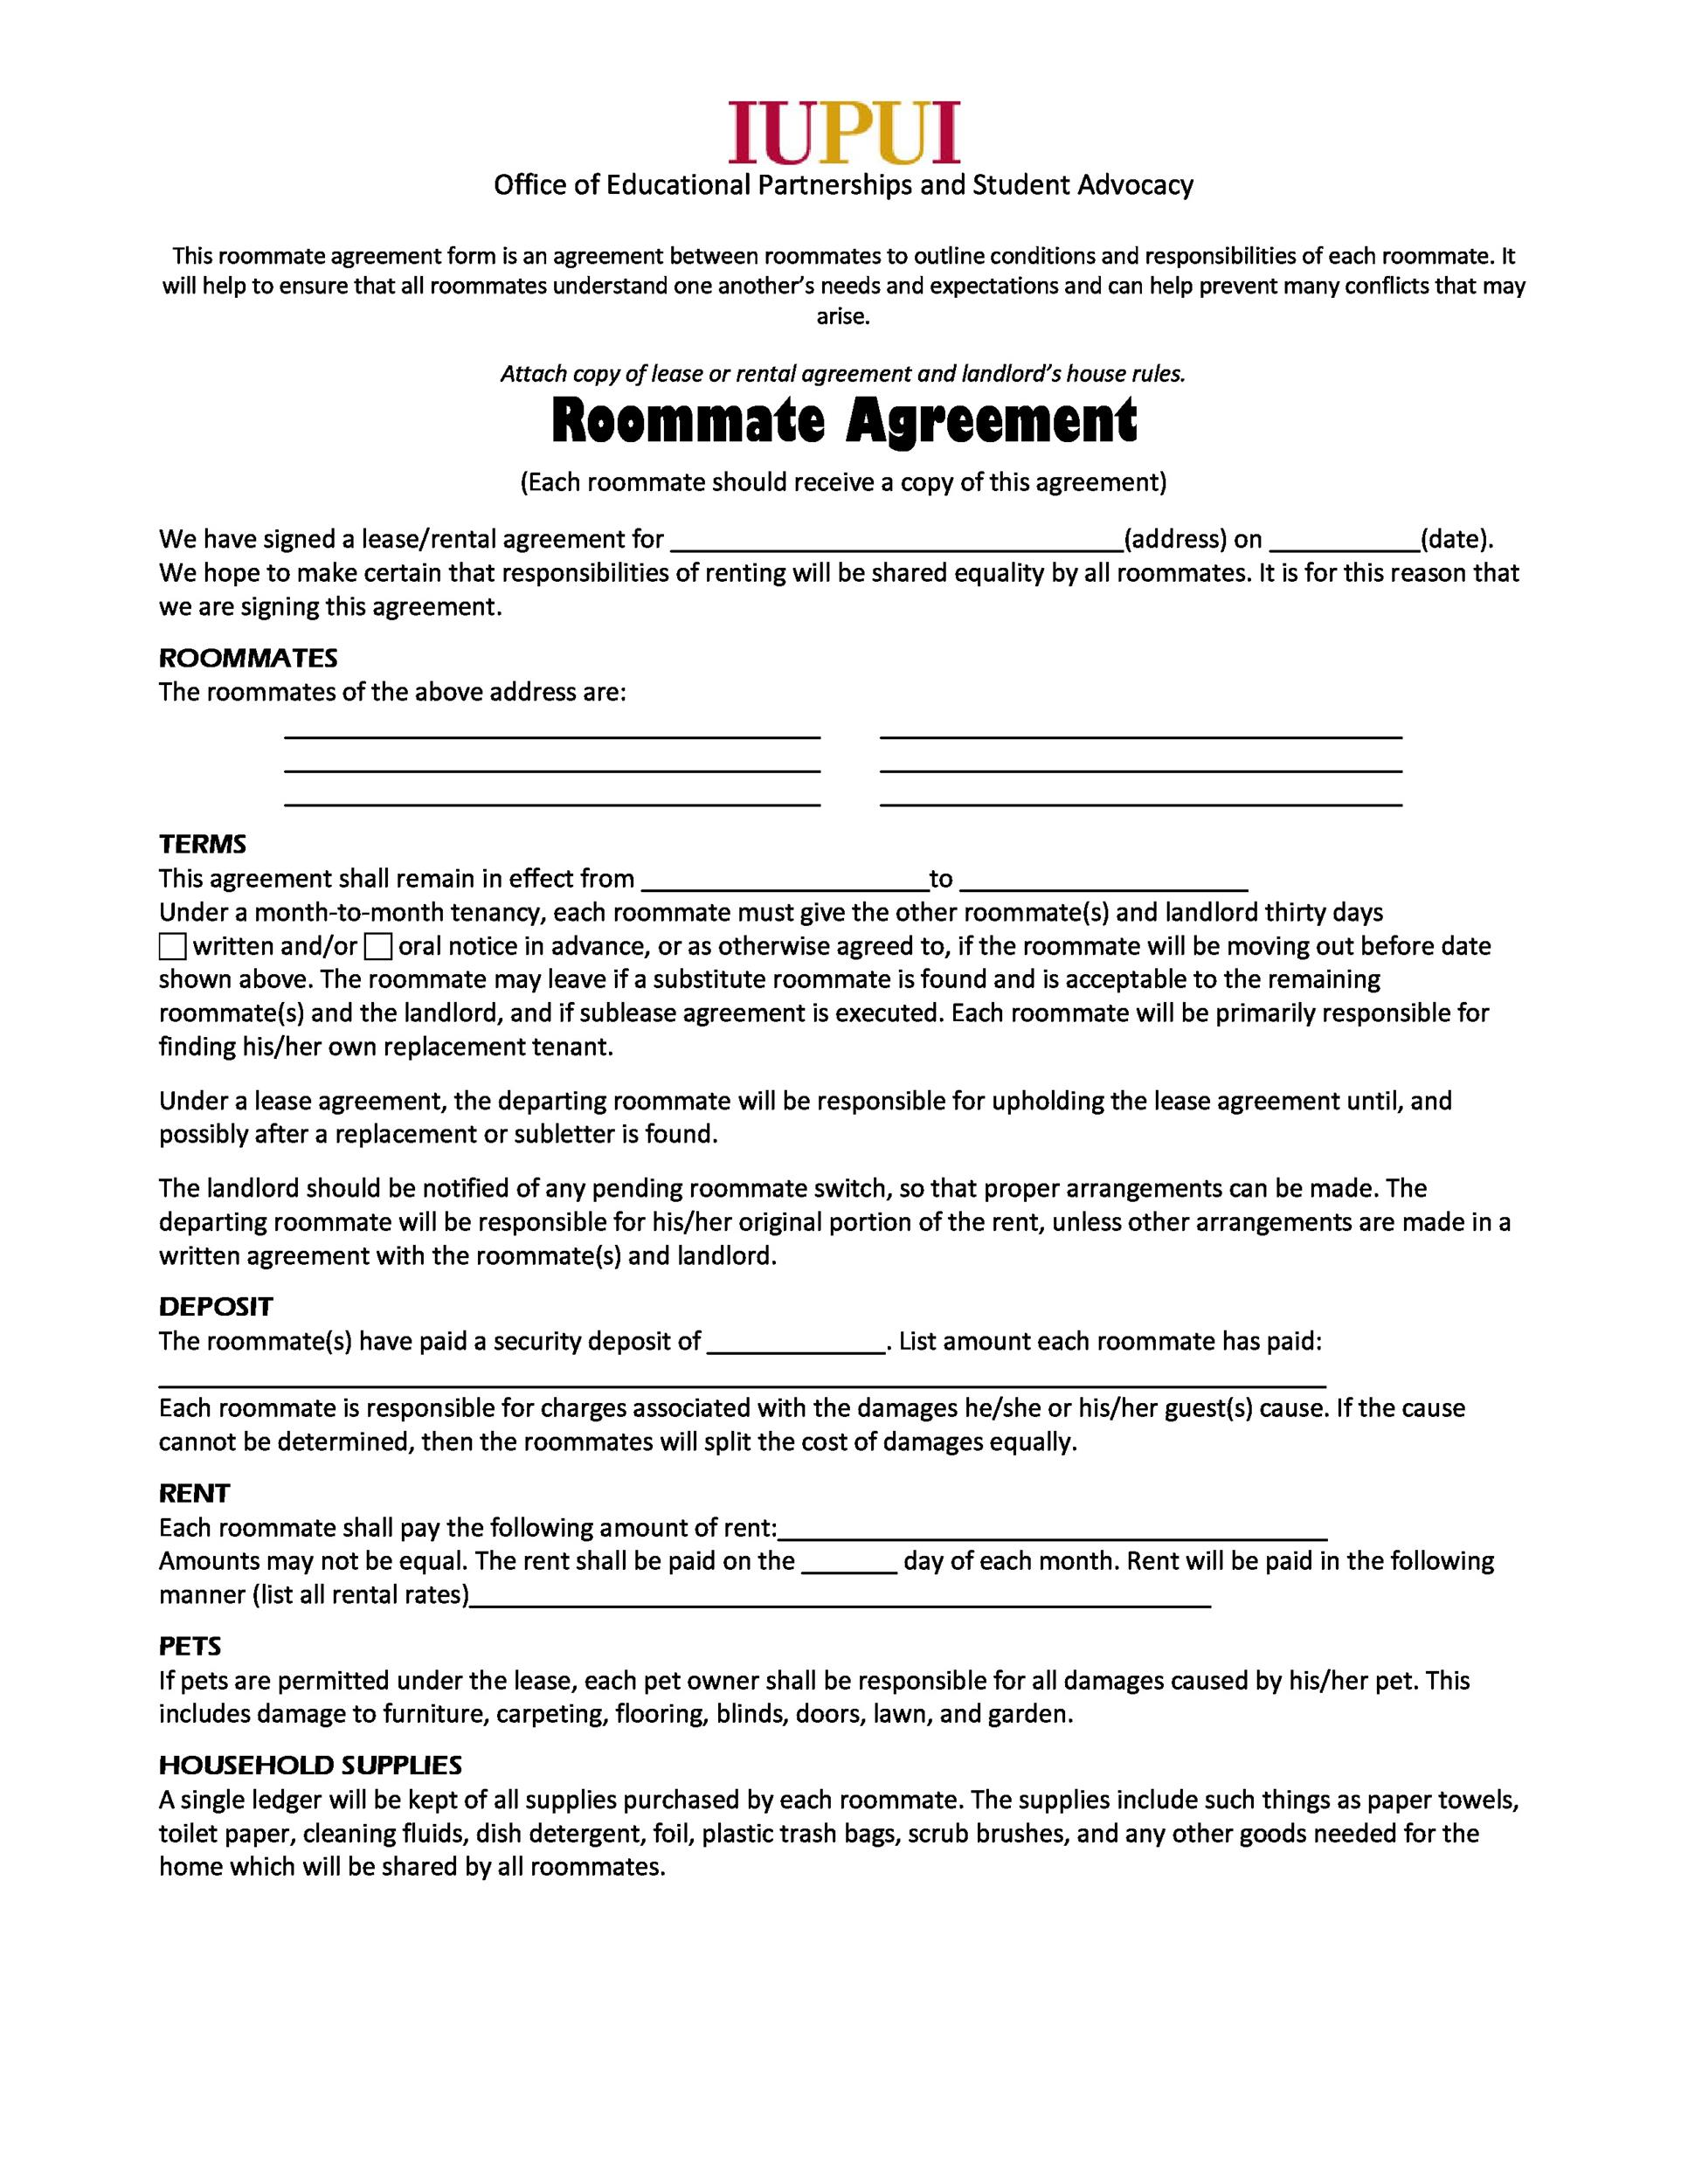 Printable Roommate Agreement Template 14  Free Lease Agreement Template Word Doc